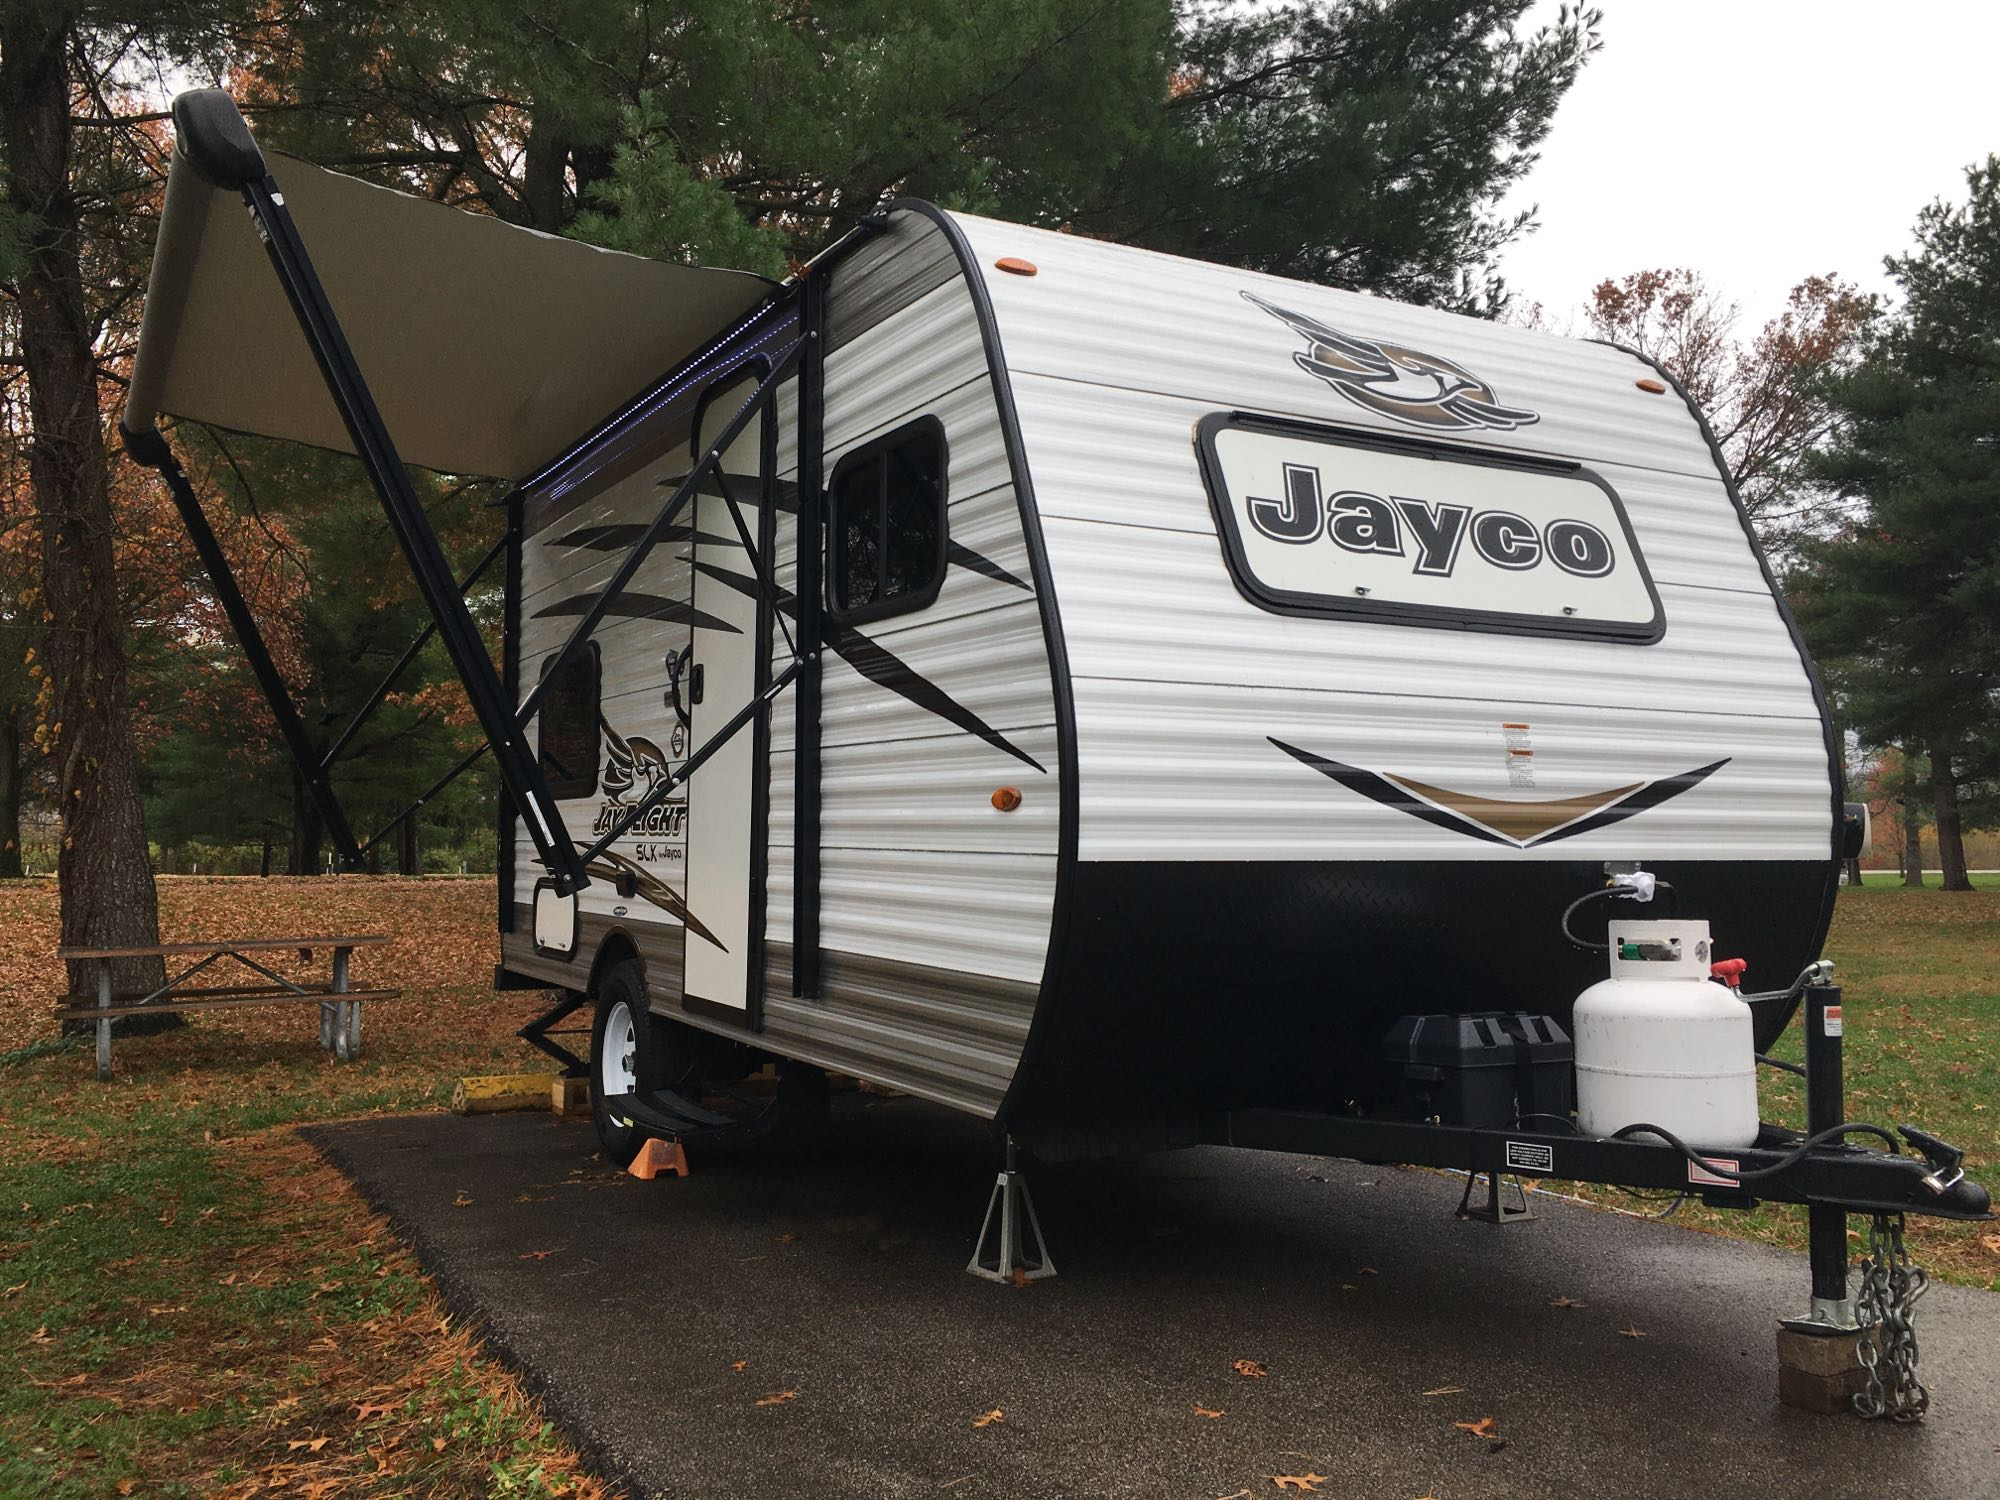 In her natural habitat. Jayco JayFlight 2018